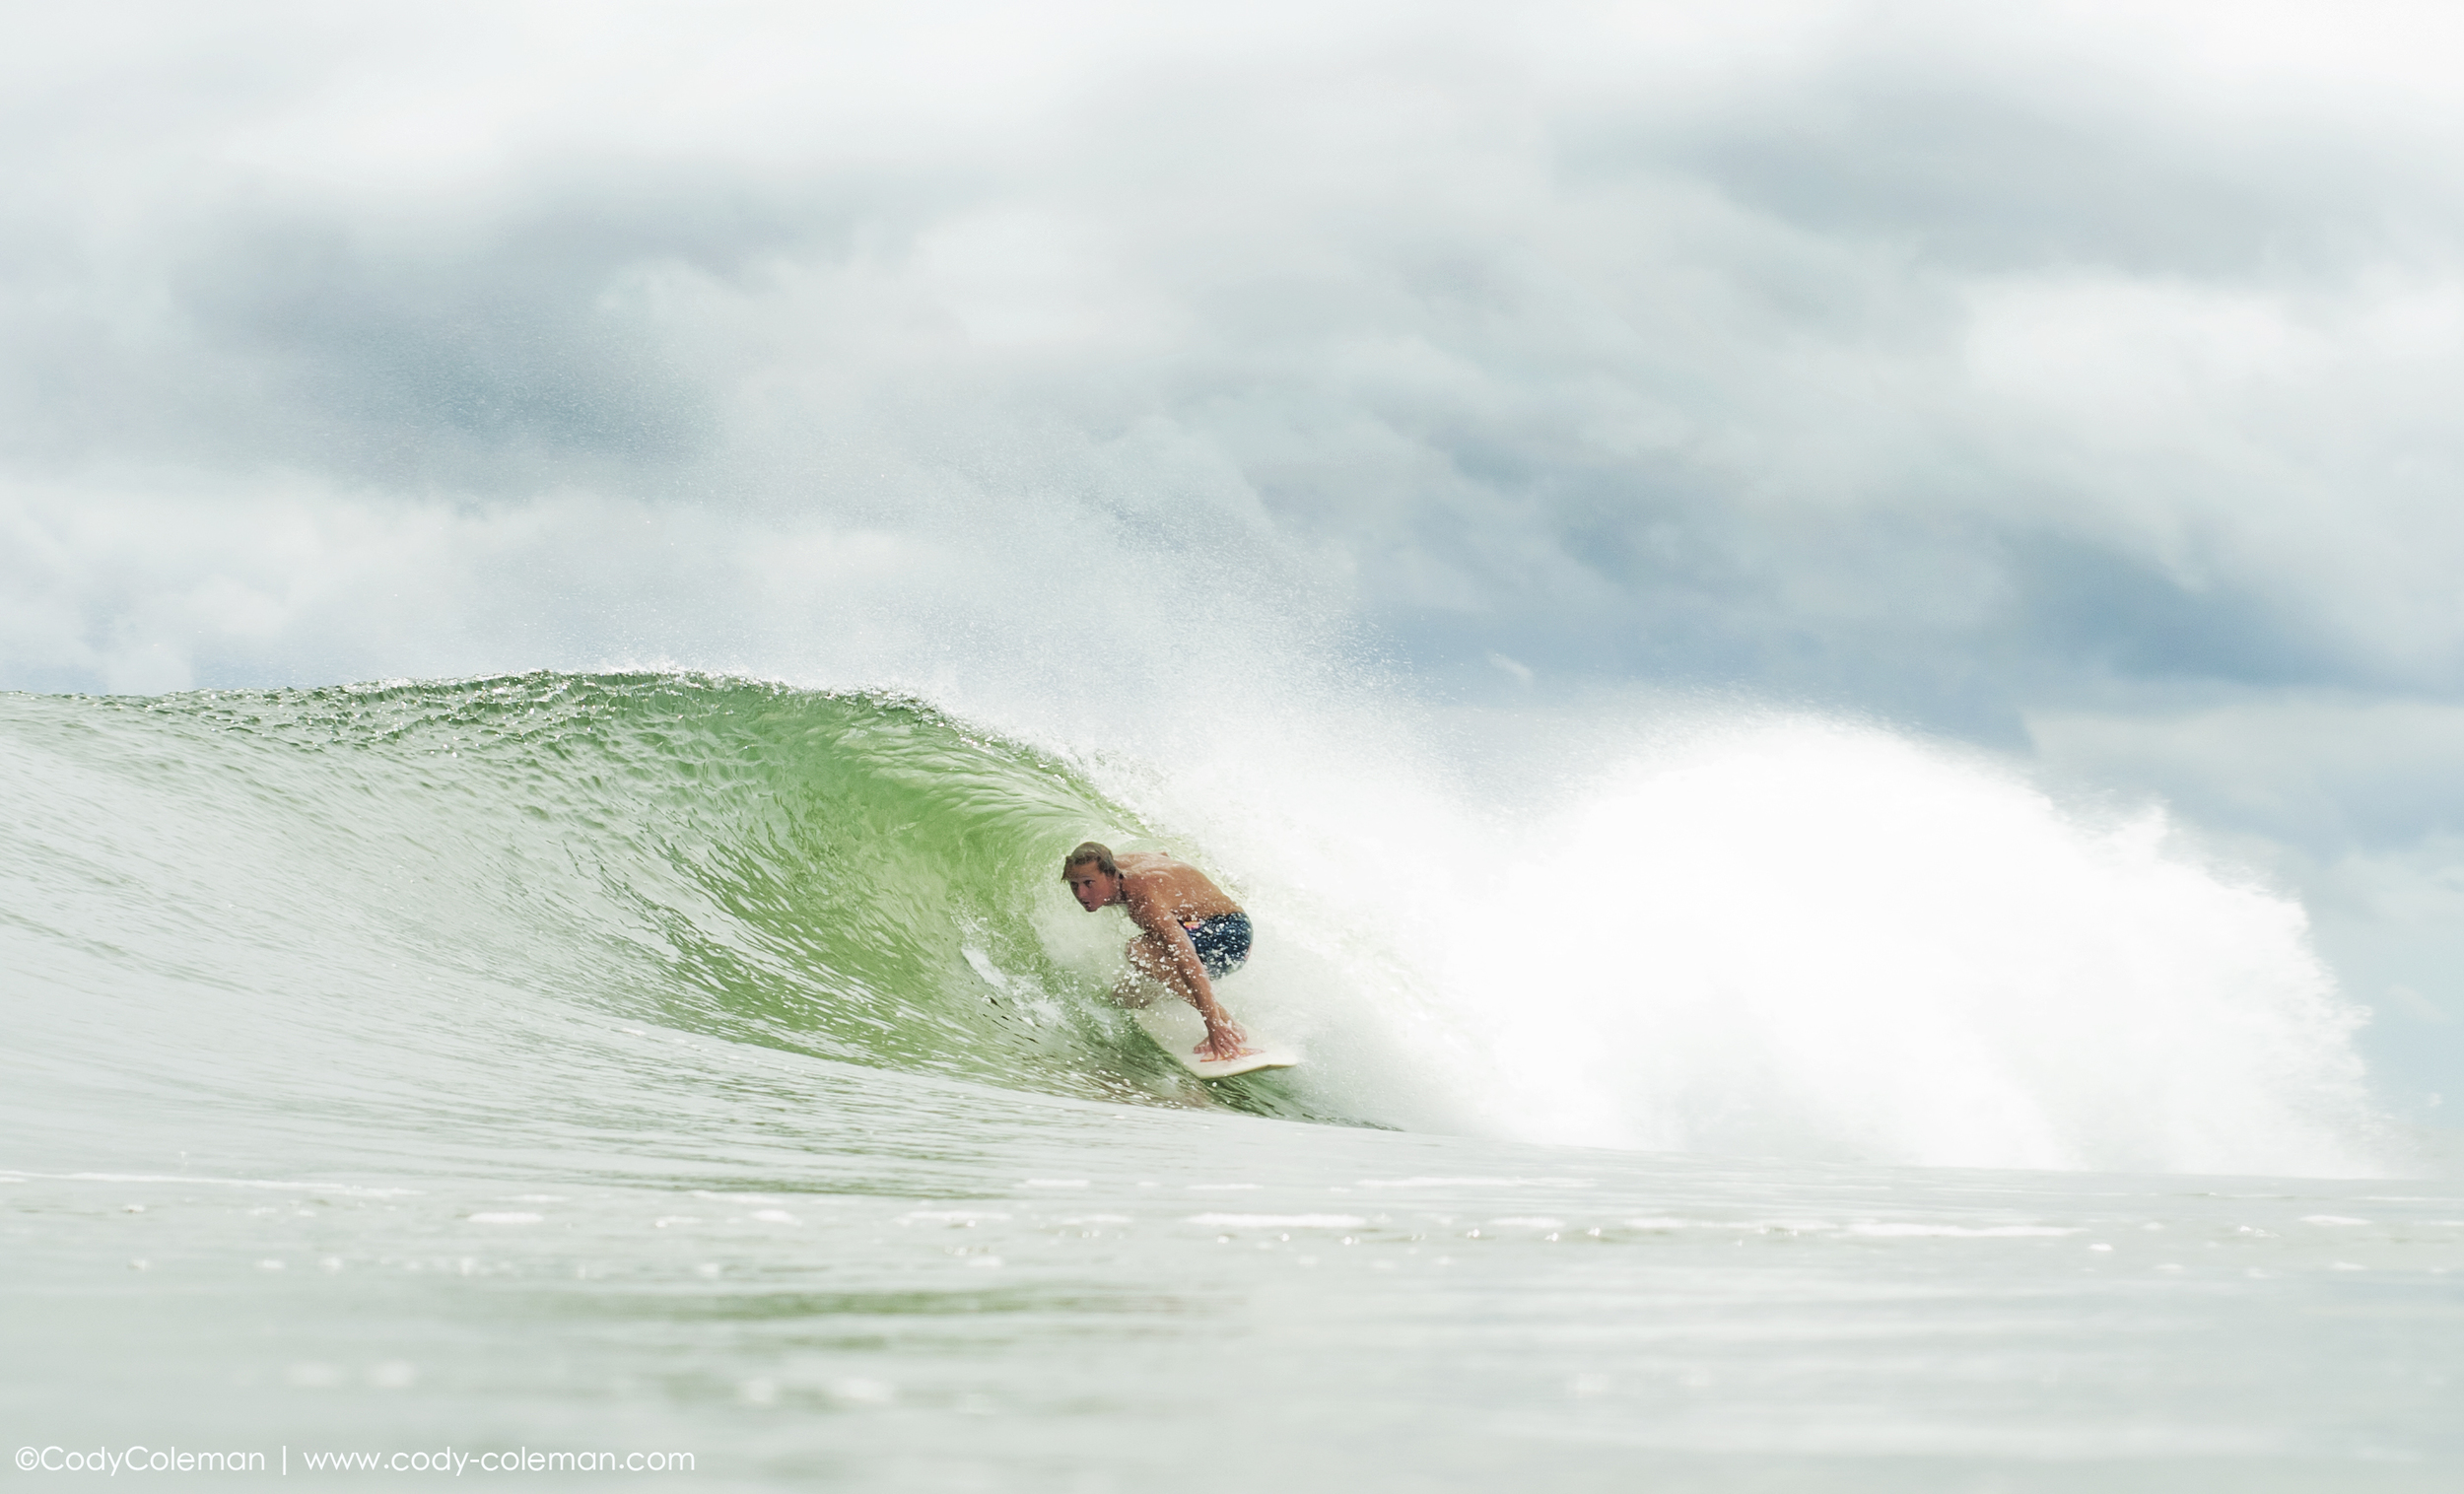 Alex Gregorie snagged one of the better sets of the day. Squeezing into the barrel for 8 frames and coming out.